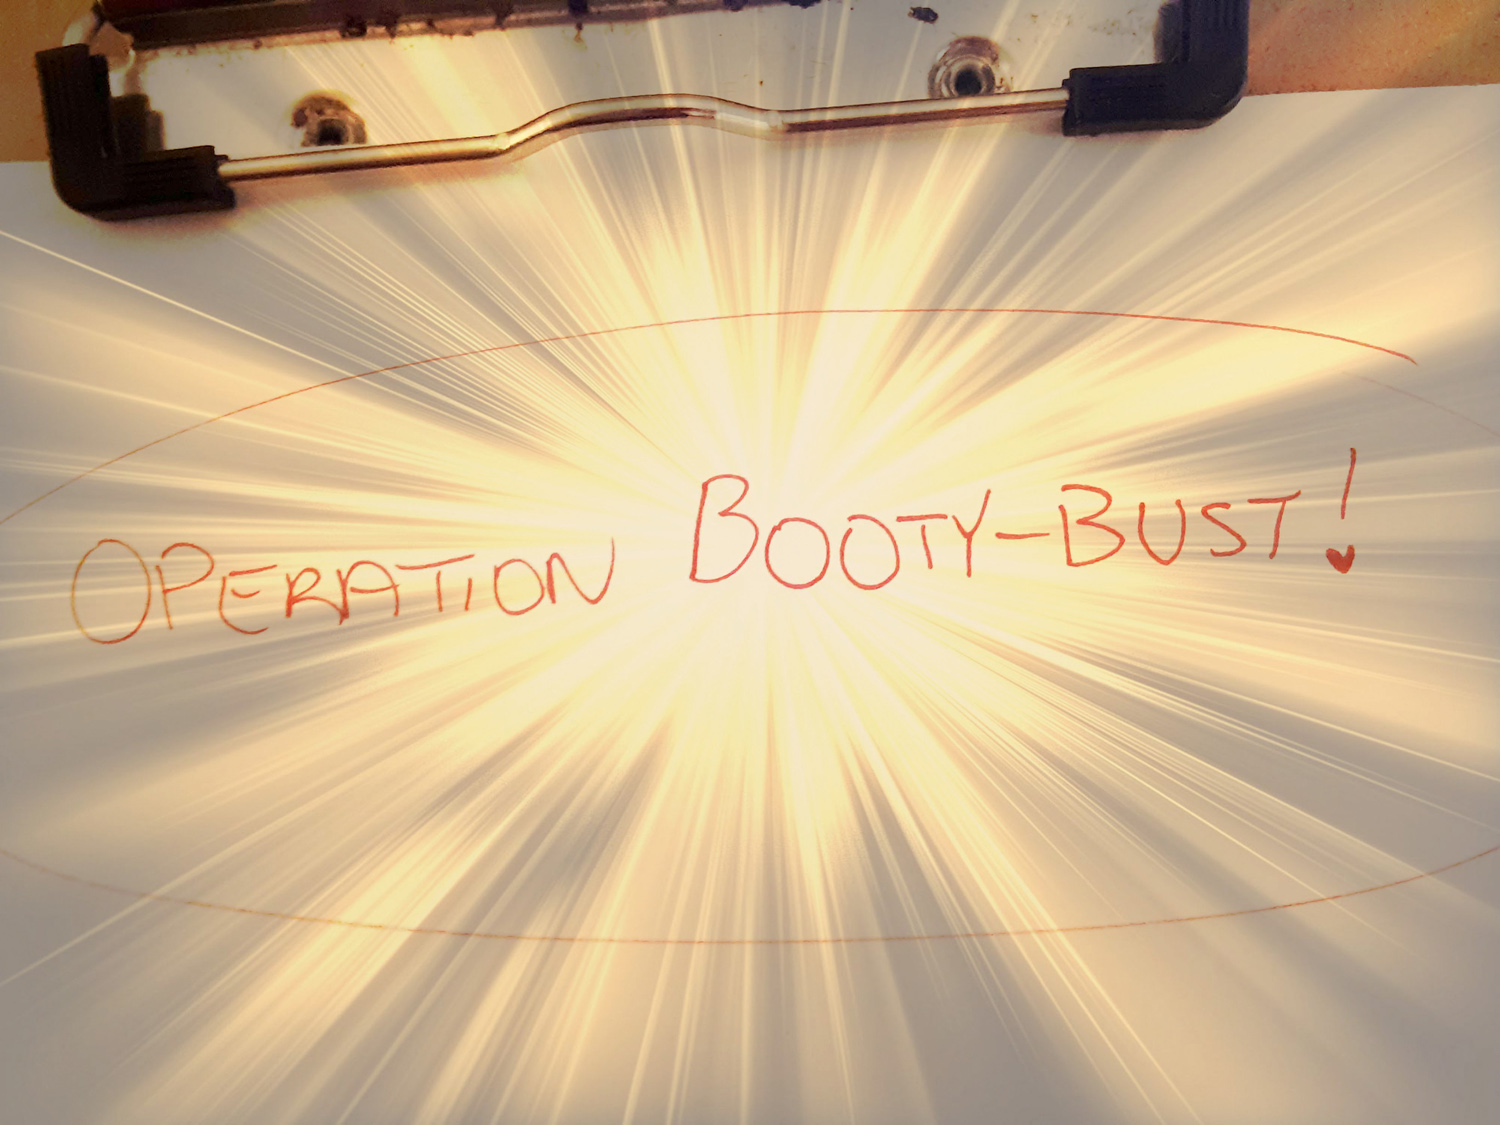 Operation-Booty-Bust-Clipboard-Burble-and-Balter.jpg